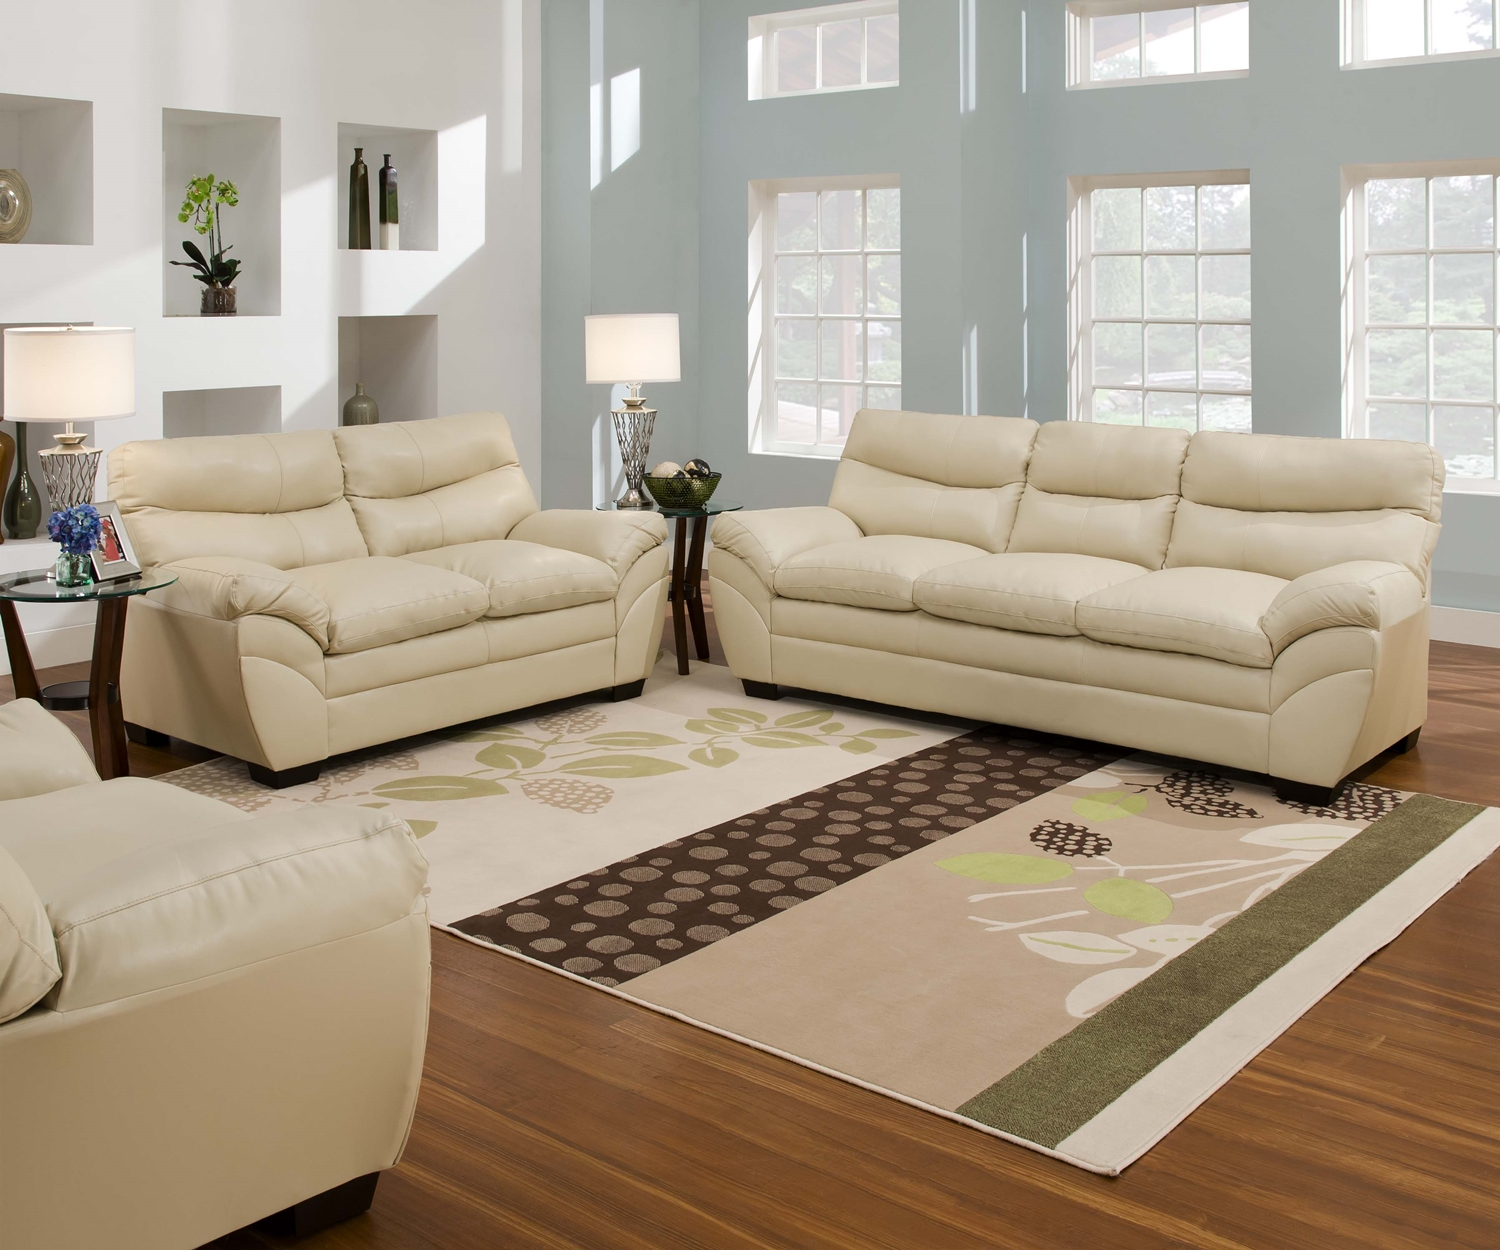 Casual Contemporary Cream Bonded Leather Sofa Set Living